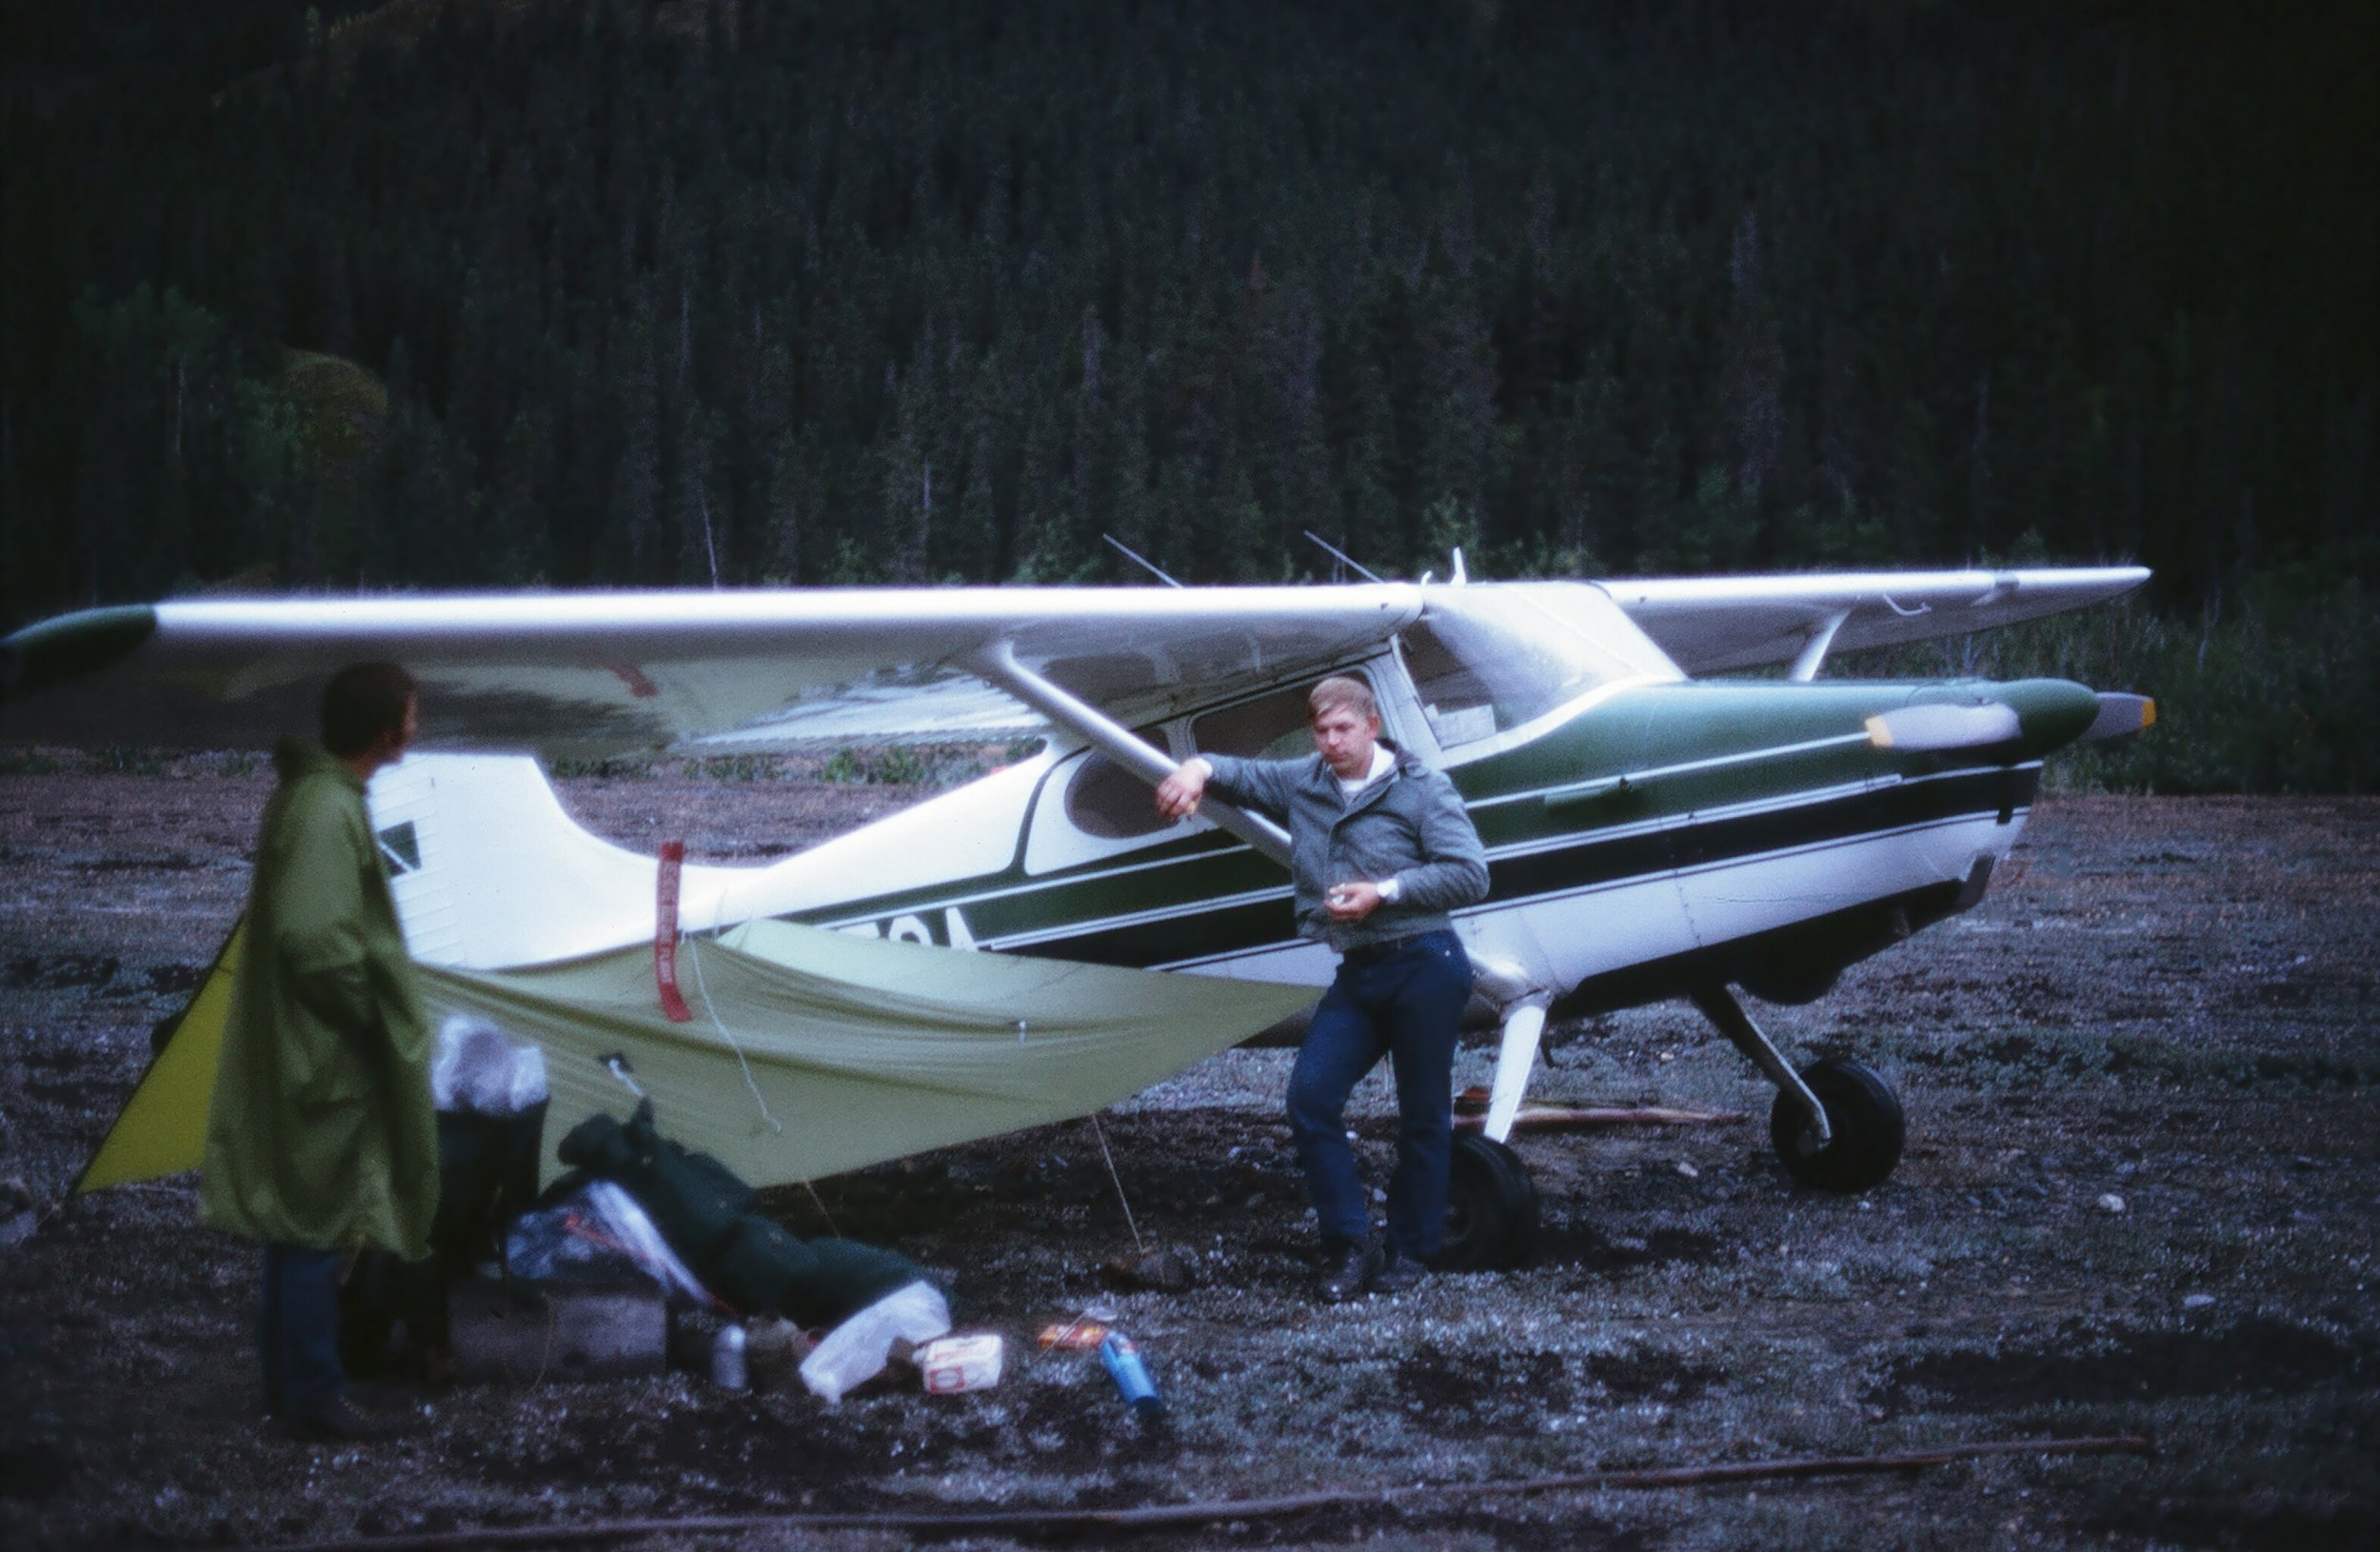 Andy leaning against the strut of his Cessna 170 at Hubert's strip.